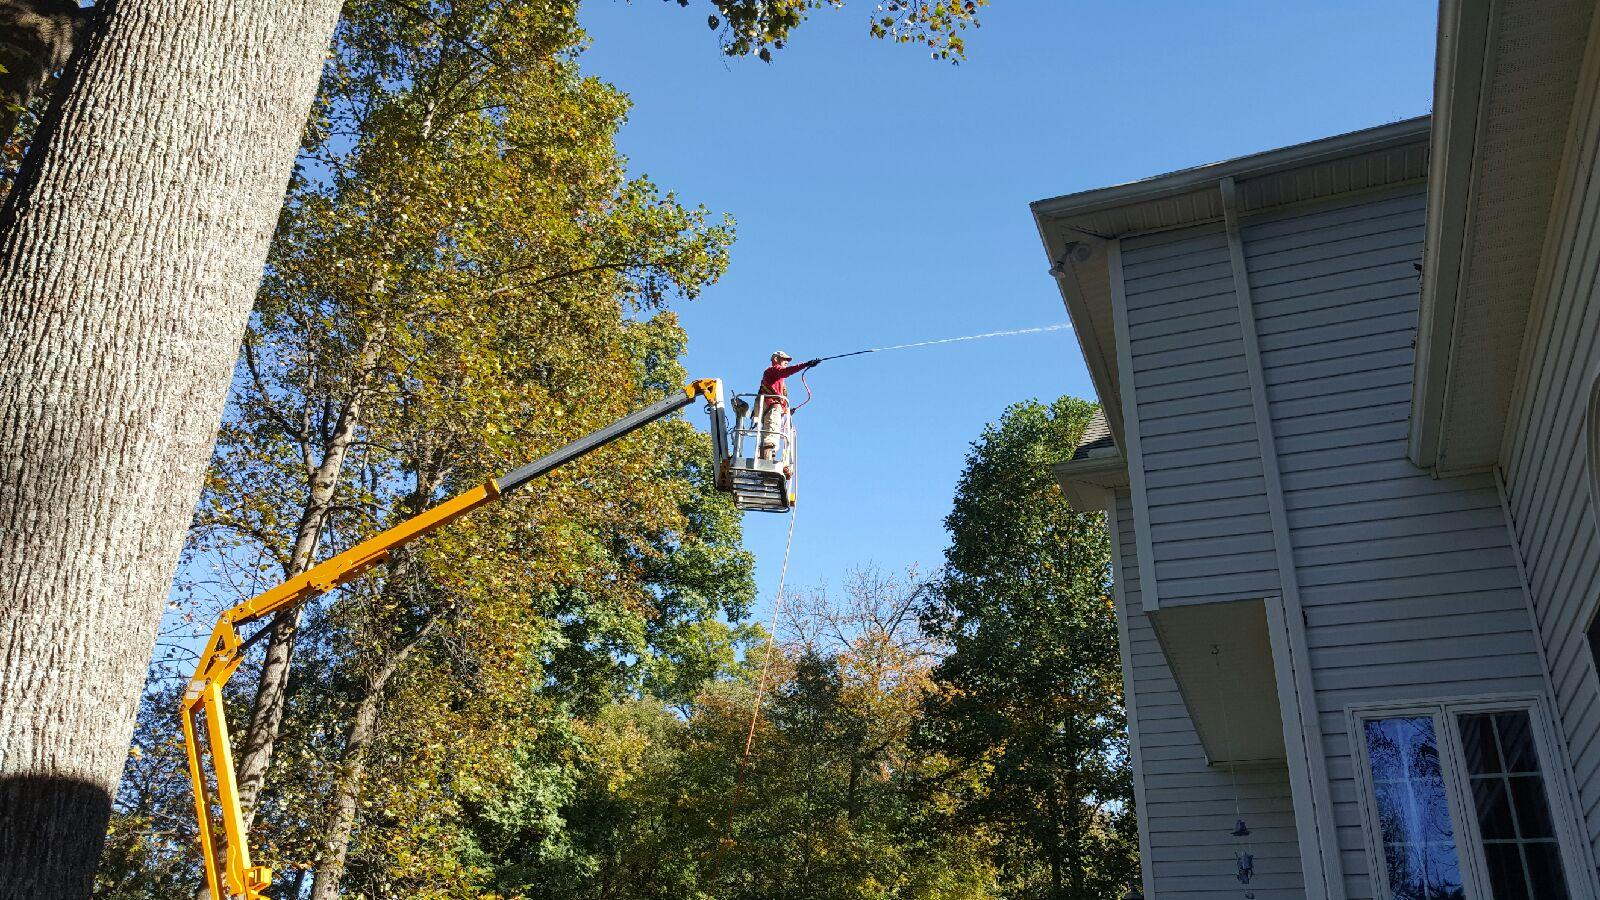 Boom Lift | Power Washing Service in Greencastle PA